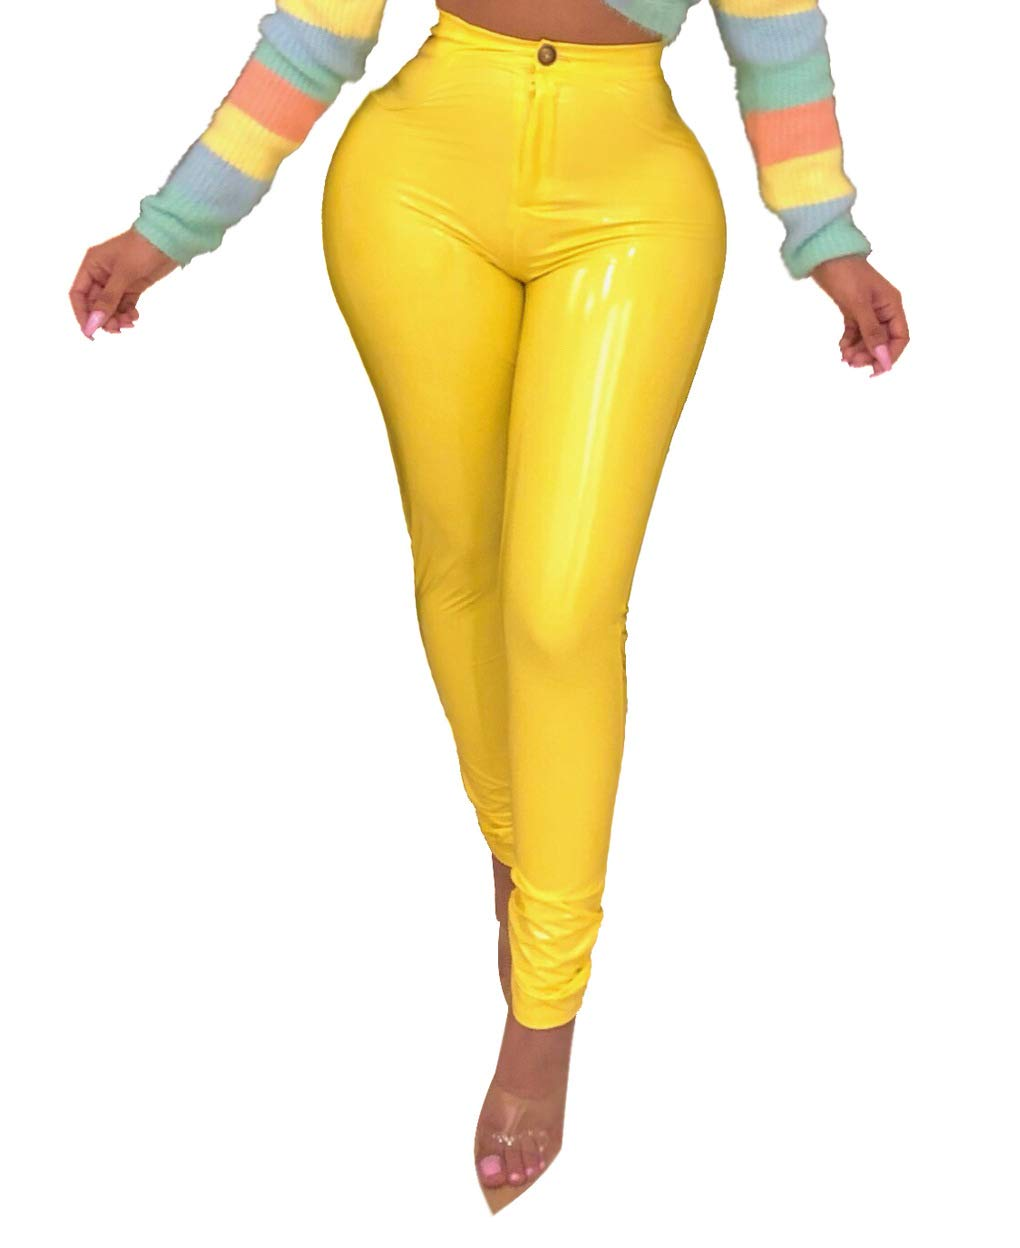 2d8b0be06ddbf1 Women's Winter Faux Leather Leggings - Fleece Lining High Waisted Pleather  Pants Yellow X-Large